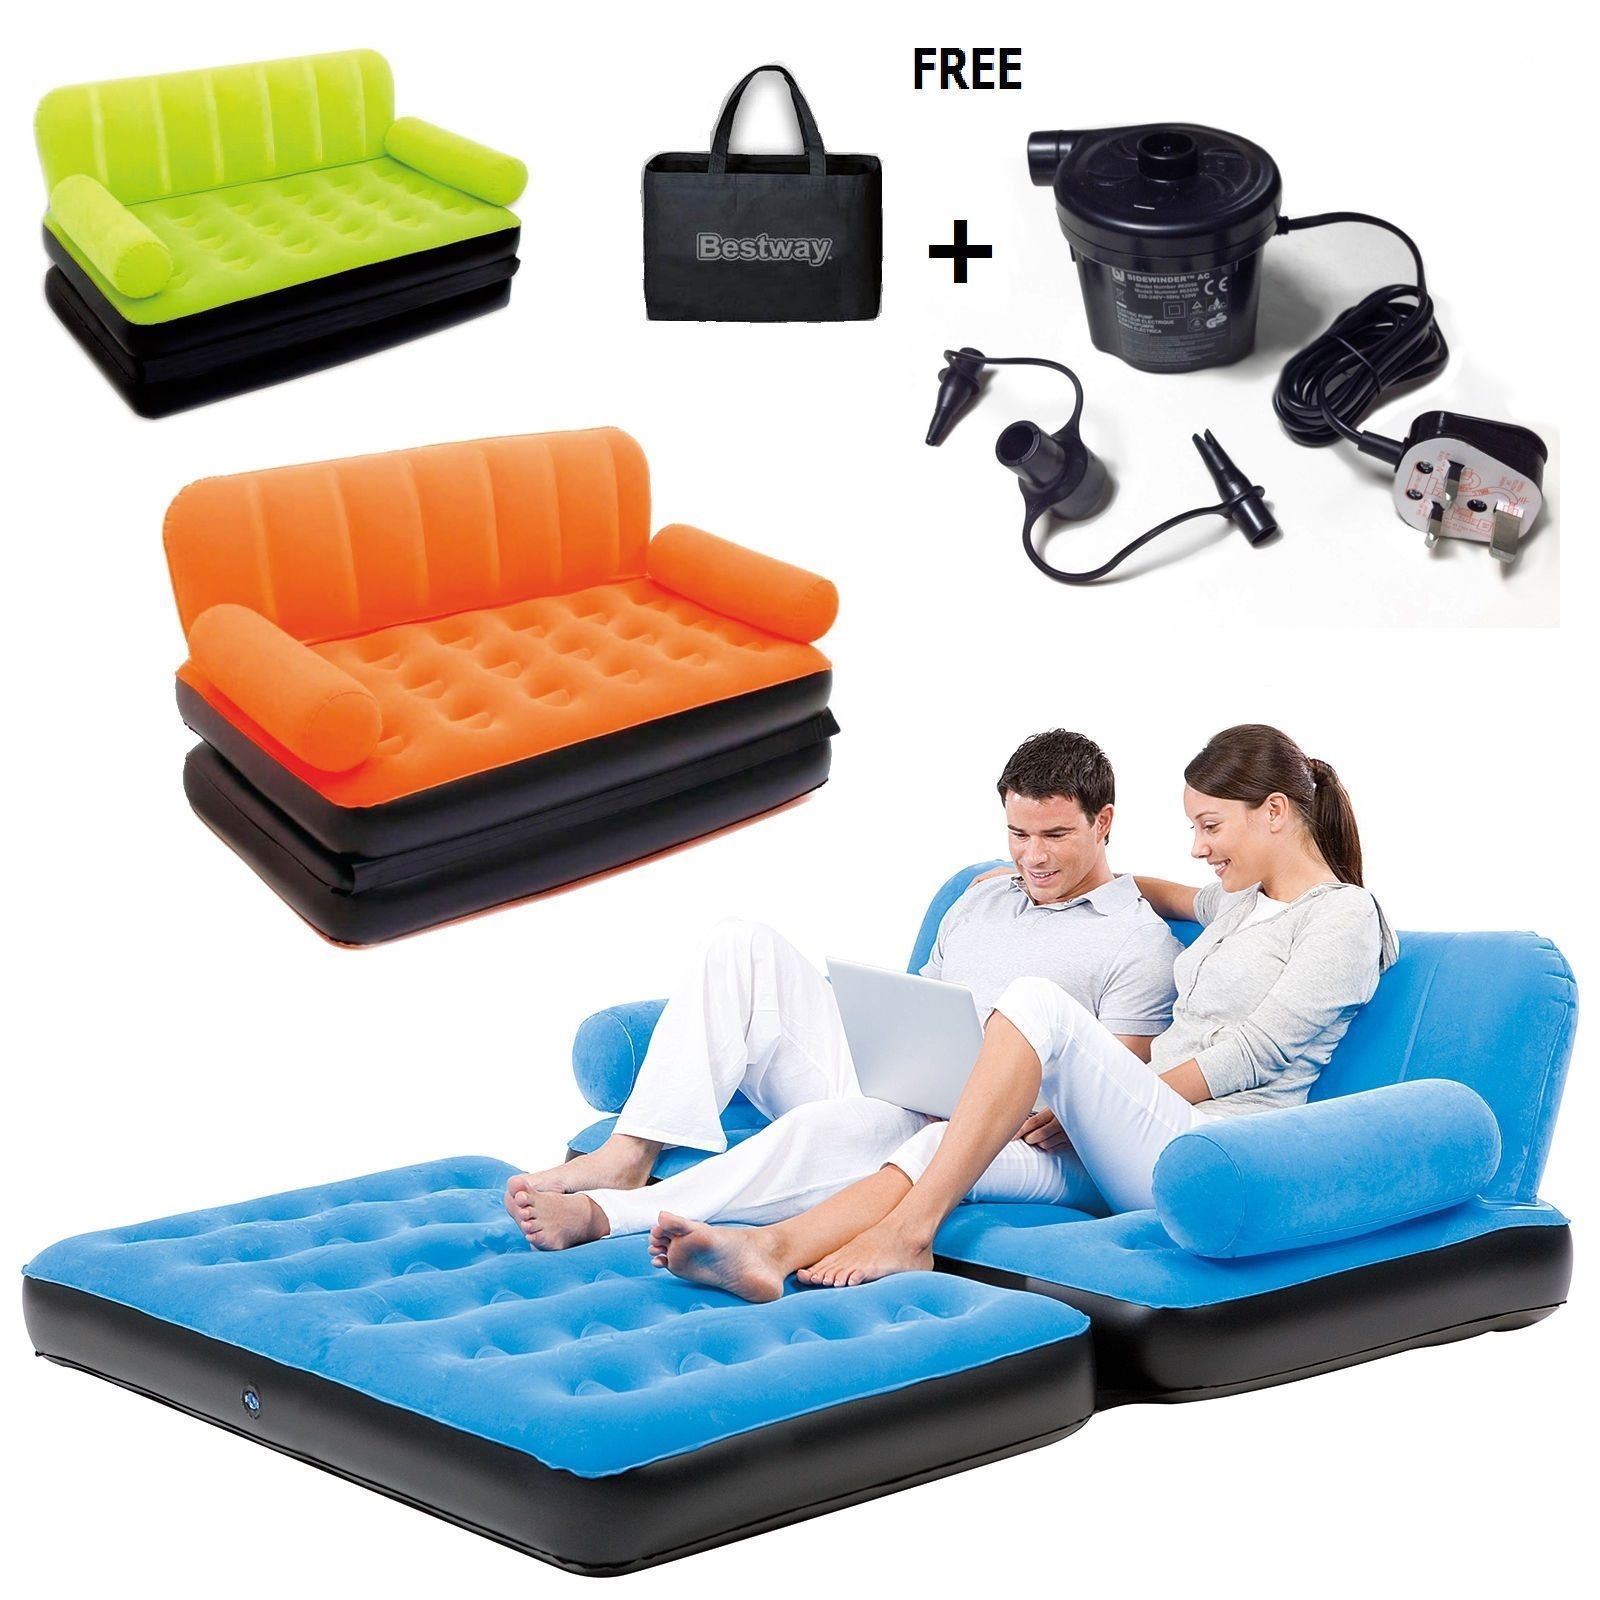 f45d2e254e7 Details about NEW BESTWAY ORANGE INFLATABLE FURNITURE DOUBLE SOFA COUCH AIR  PUMP BED MATTRESS